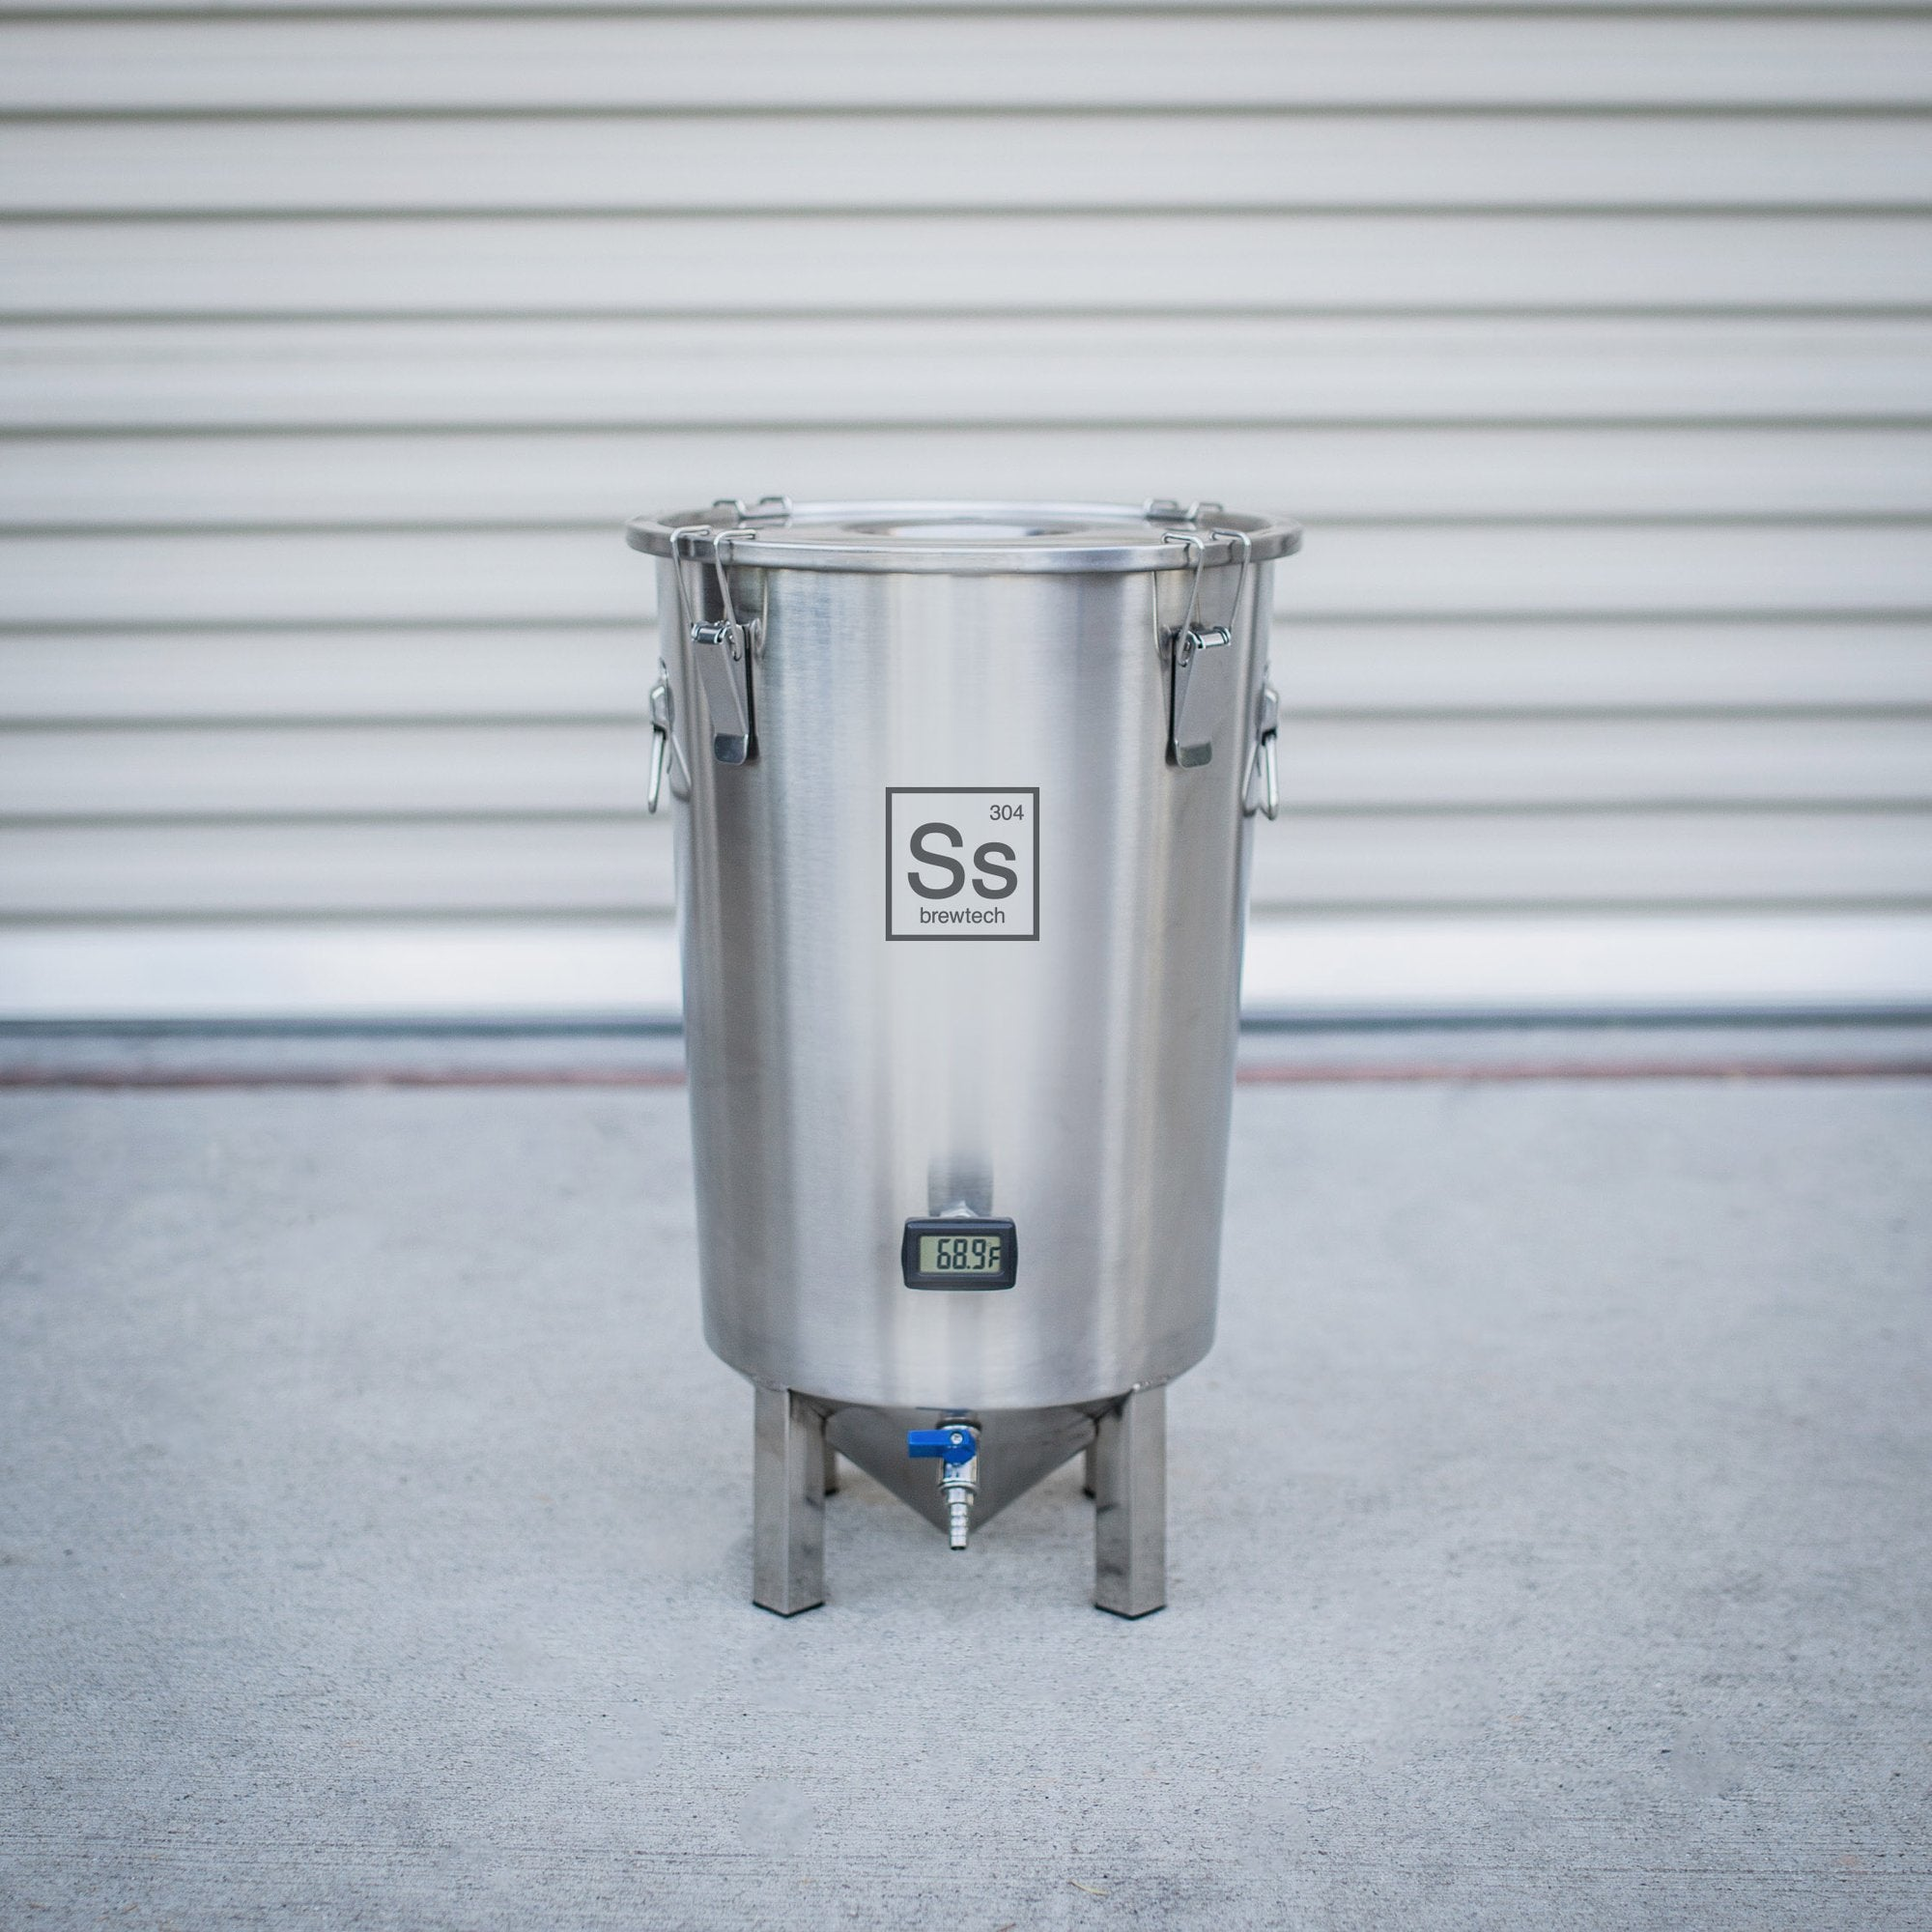 Ss brewtech Brew Bucket Brewmaster Edition - 52L